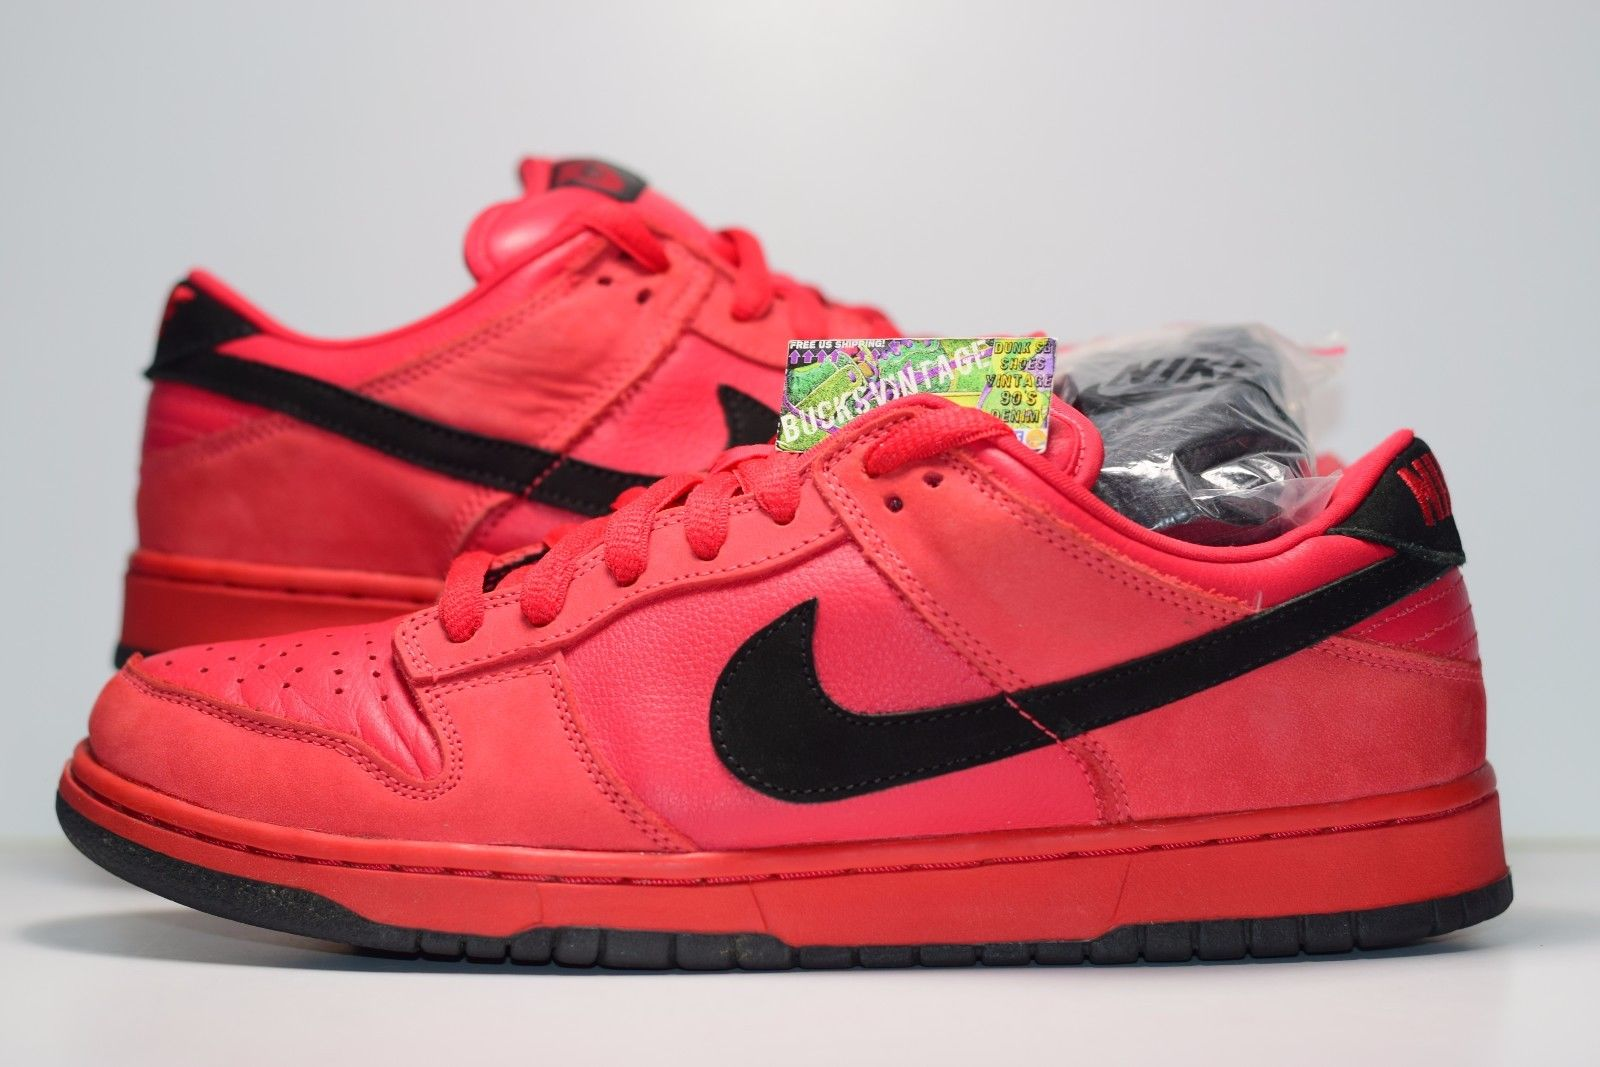 purchase cheap 4a9ba 115c2 Size 10.5  2003 Nike Dunk Low Pro SB TRUE RED Original Authentic 304292-601